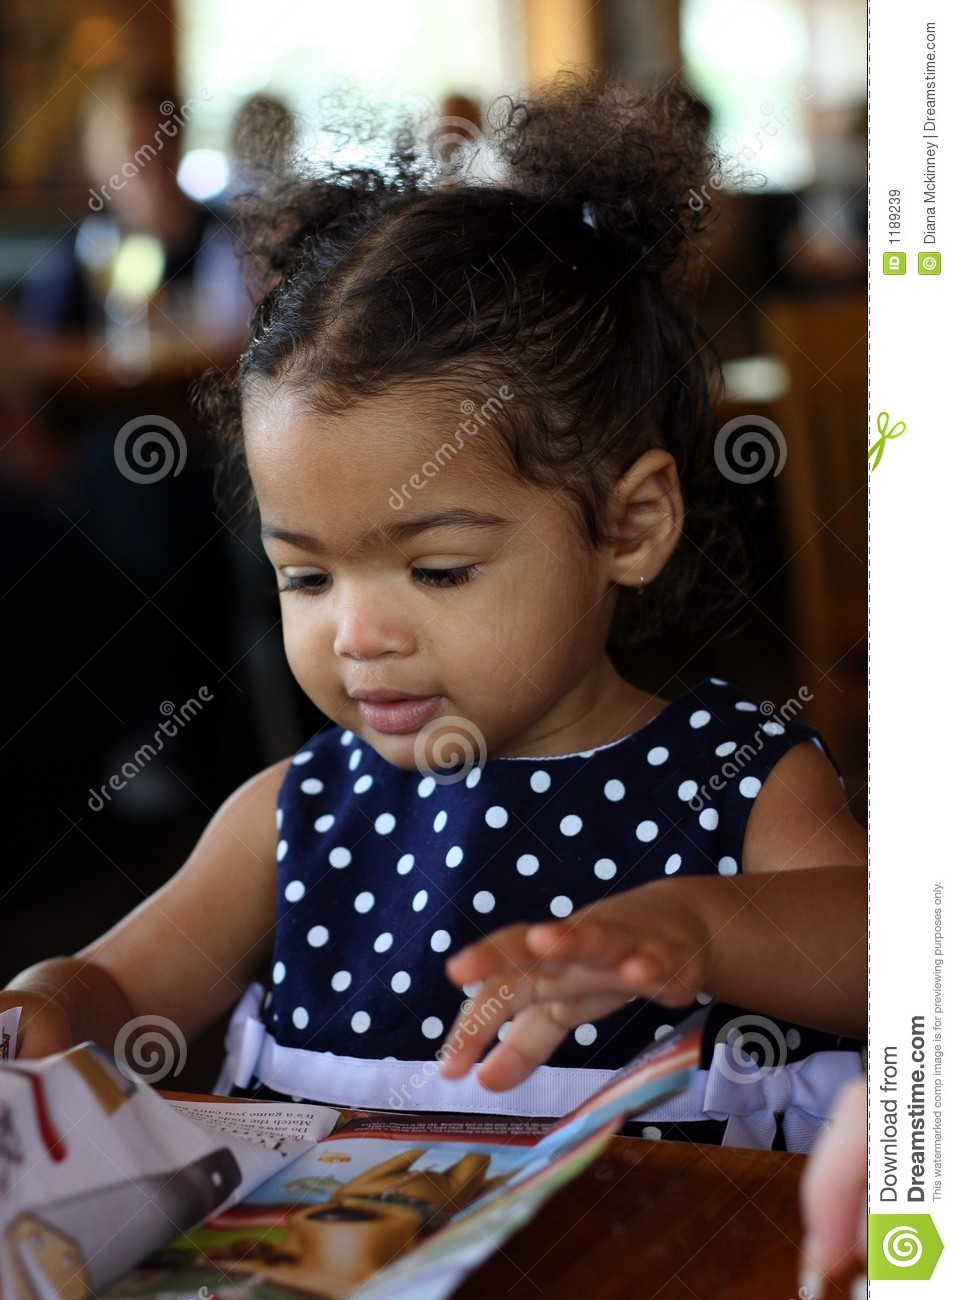 African American Toddler Female Royalty Free Stock Images